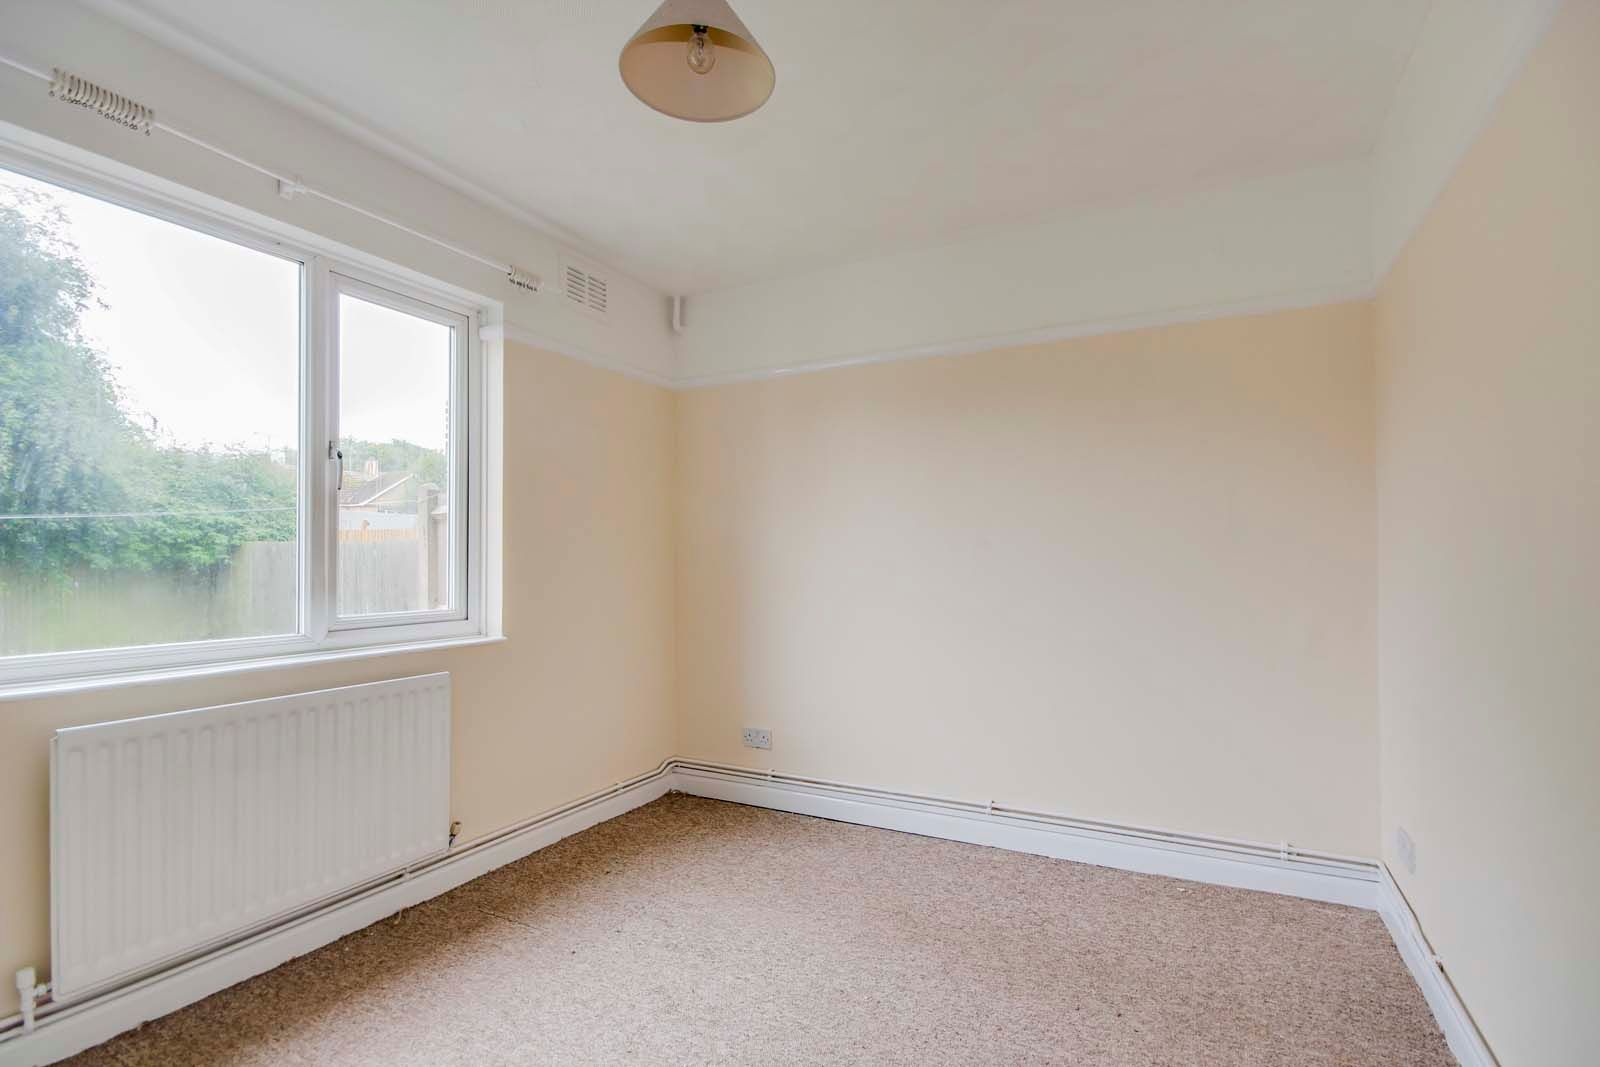 2 bed Apartment to rent in East Preston - Bedroom (Property Image 4)